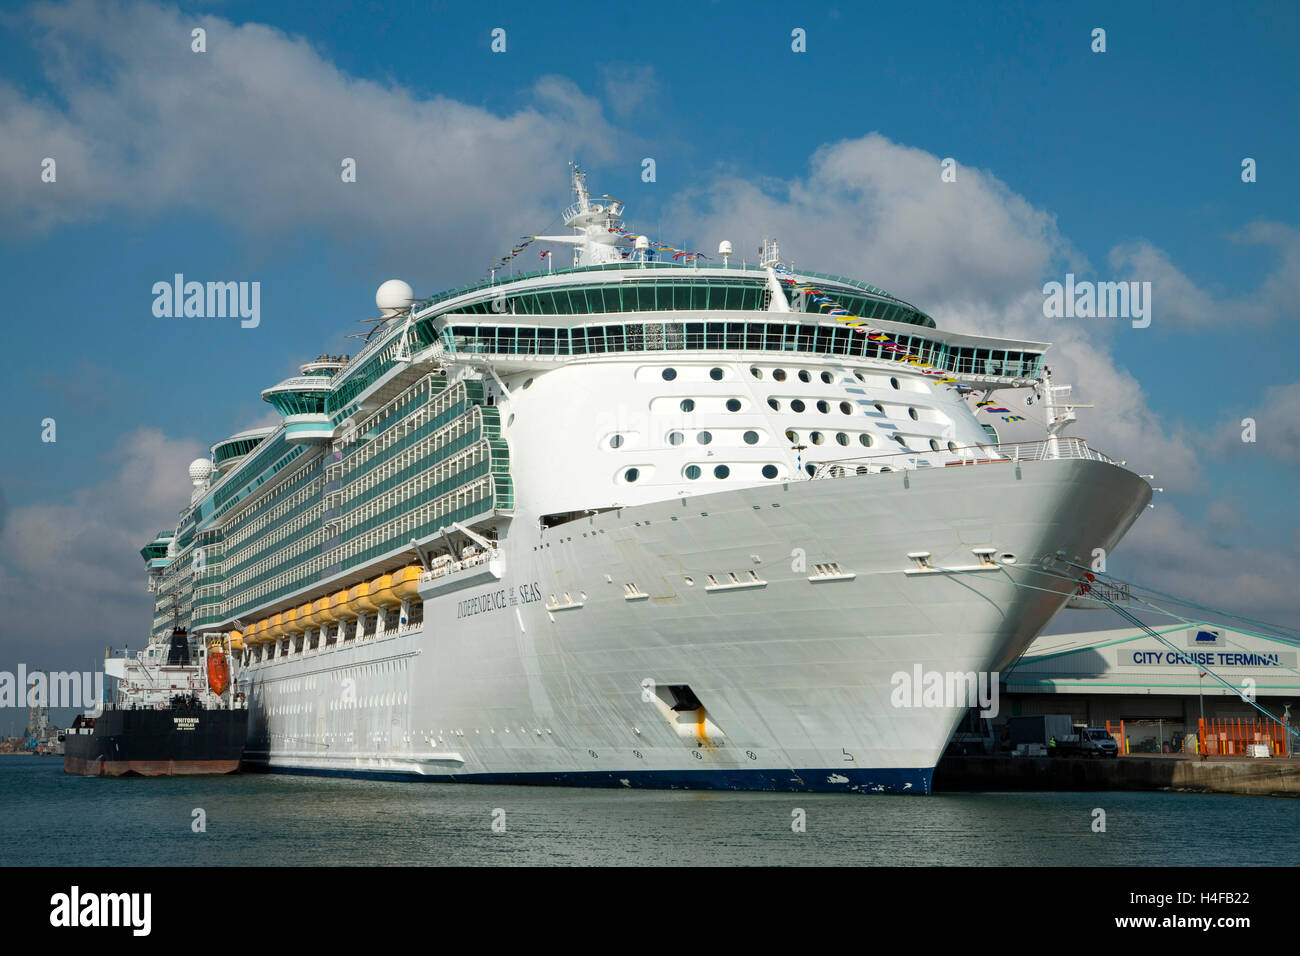 independence of the Seas at the City Cruise Terminal at Southampton before leaving on her latest cruise - Stock Image